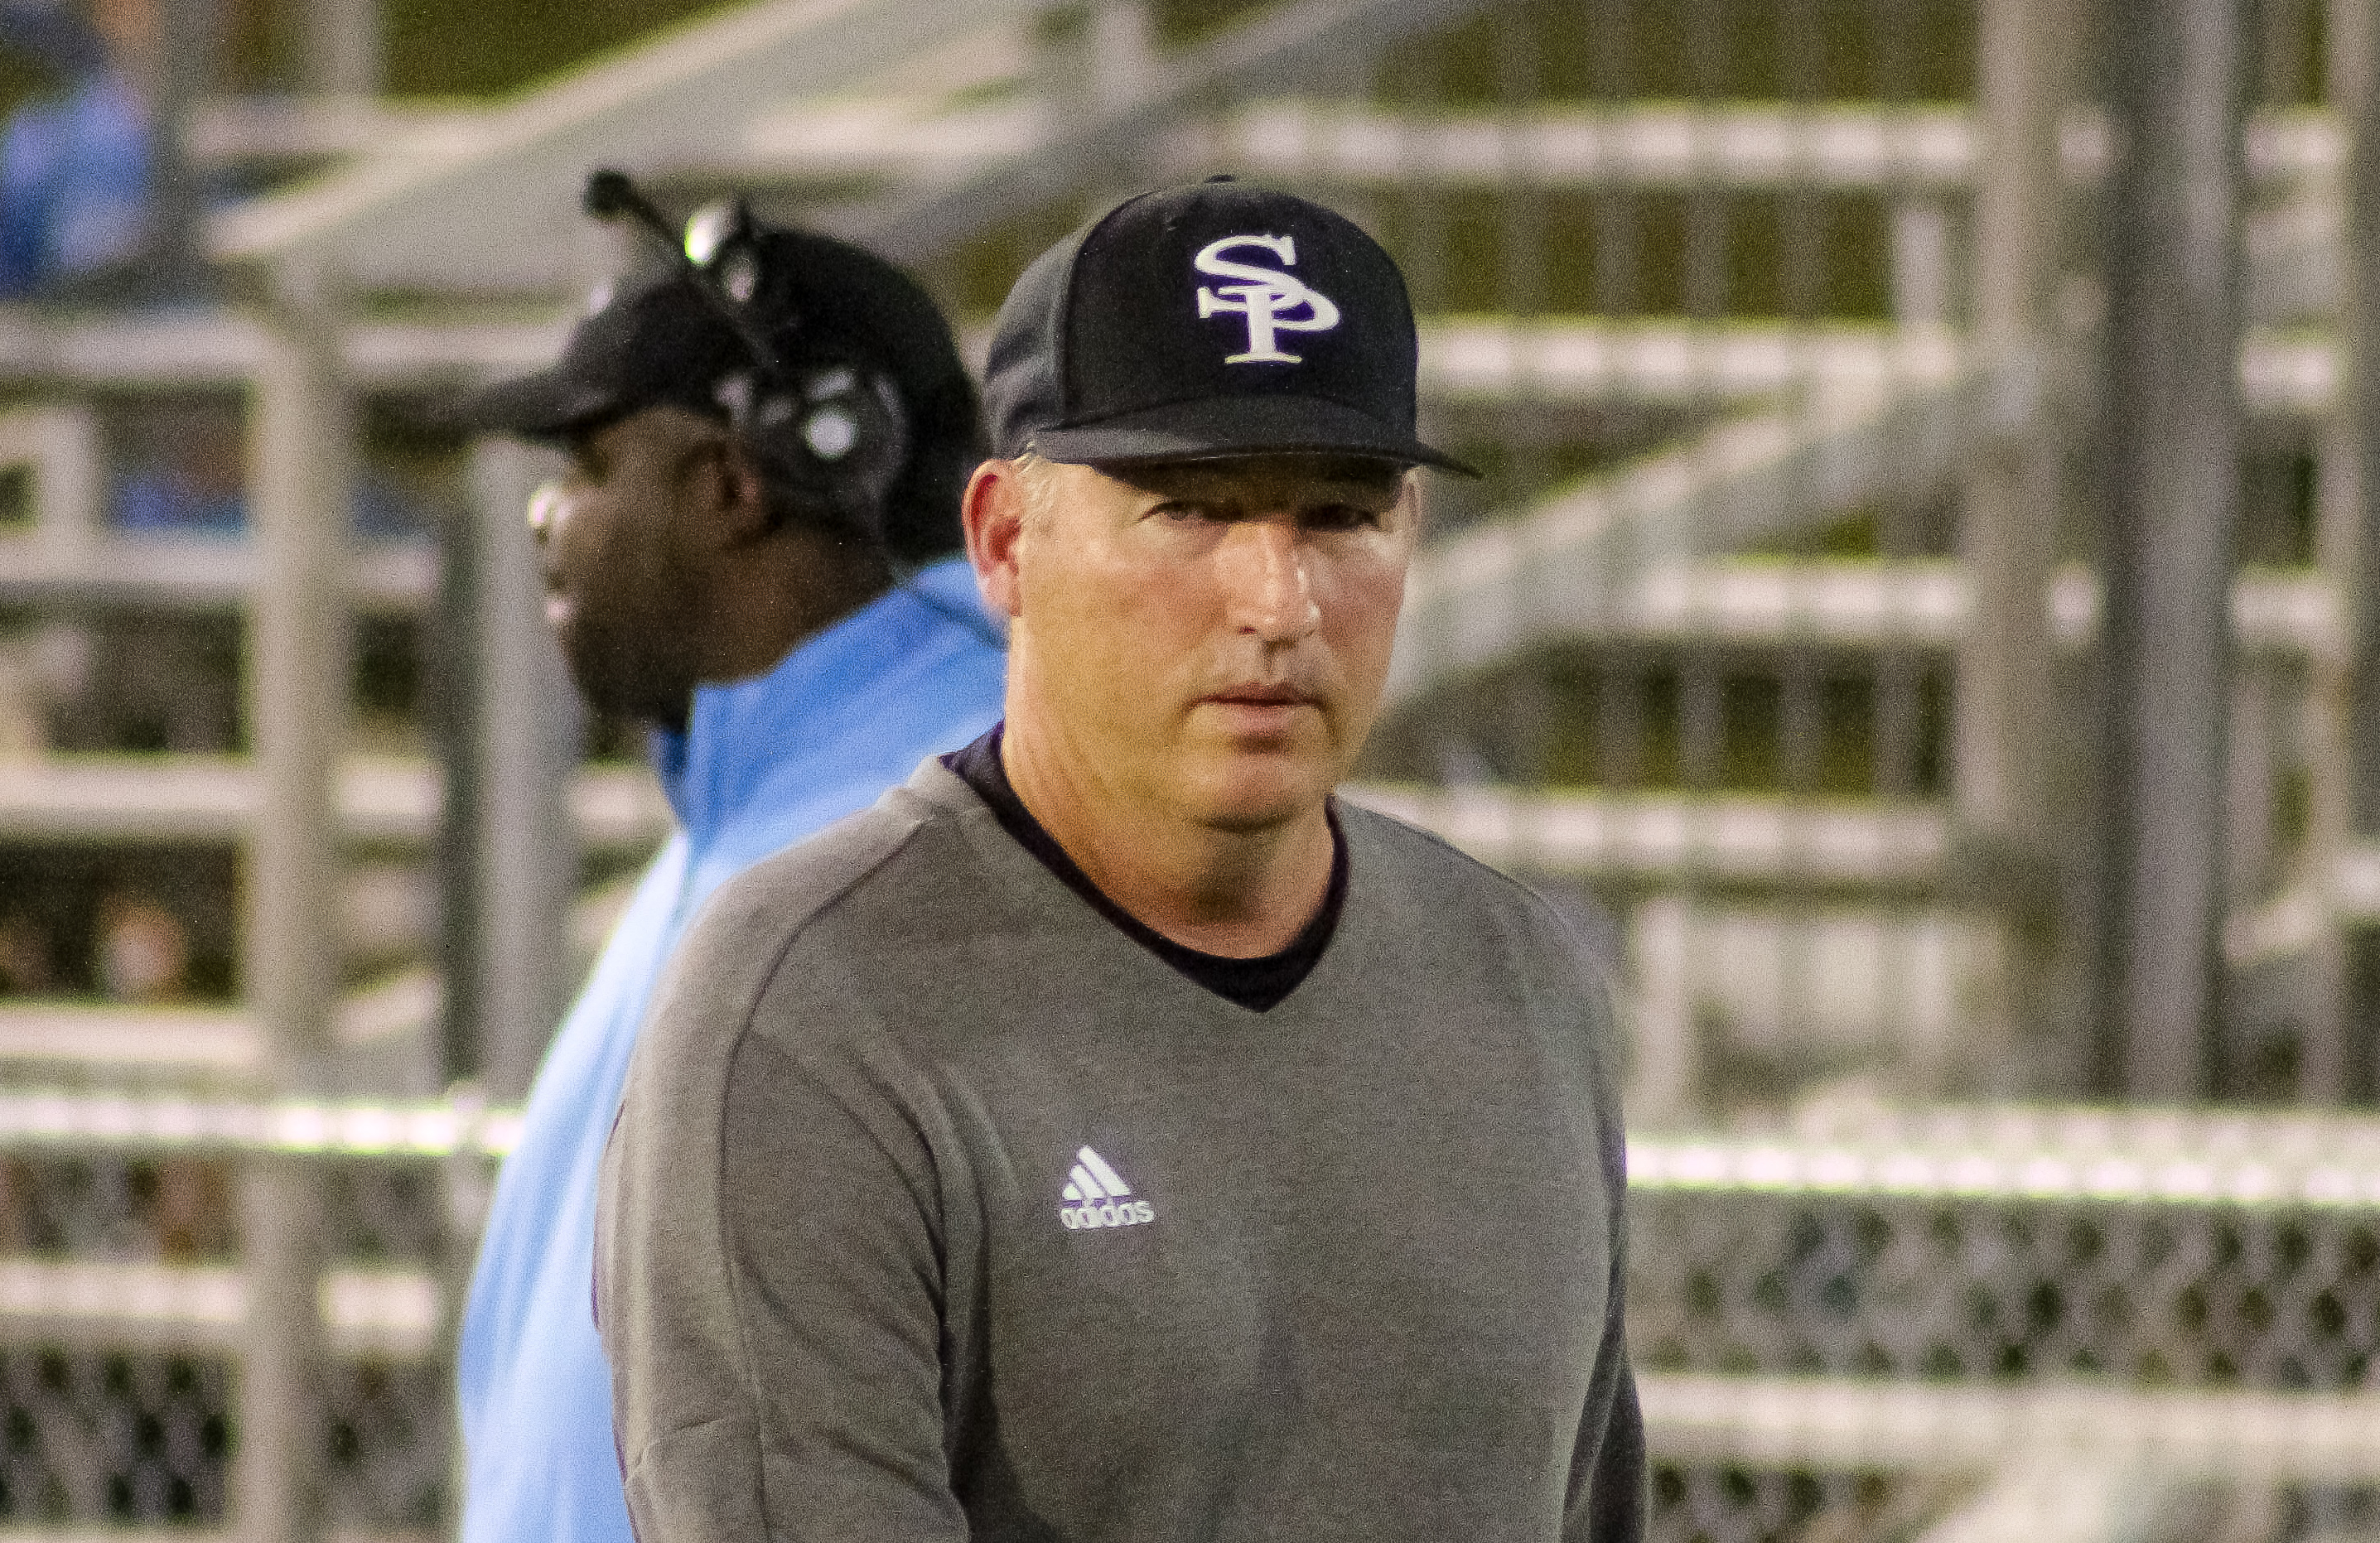 Spain Park head coach Shawn Raney